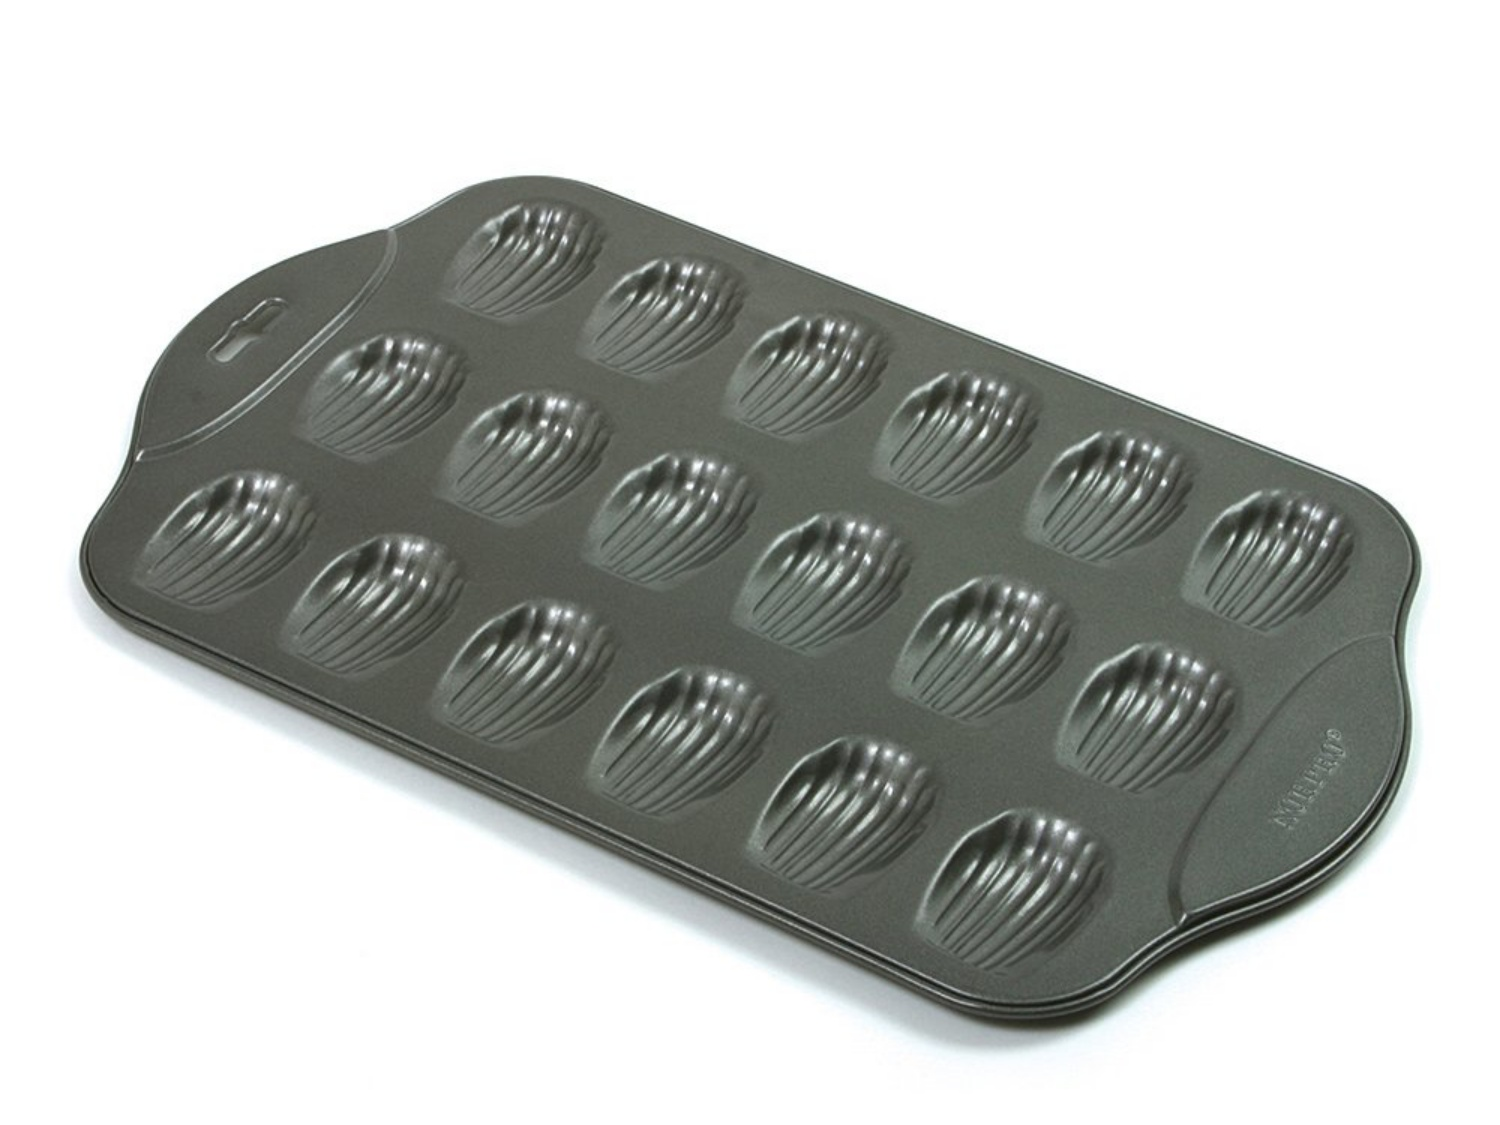 and More Candy Chocolate Freshware CB-107RD 18-Cavity Medium Silicone Mold for Homemade Madeleine Cookies